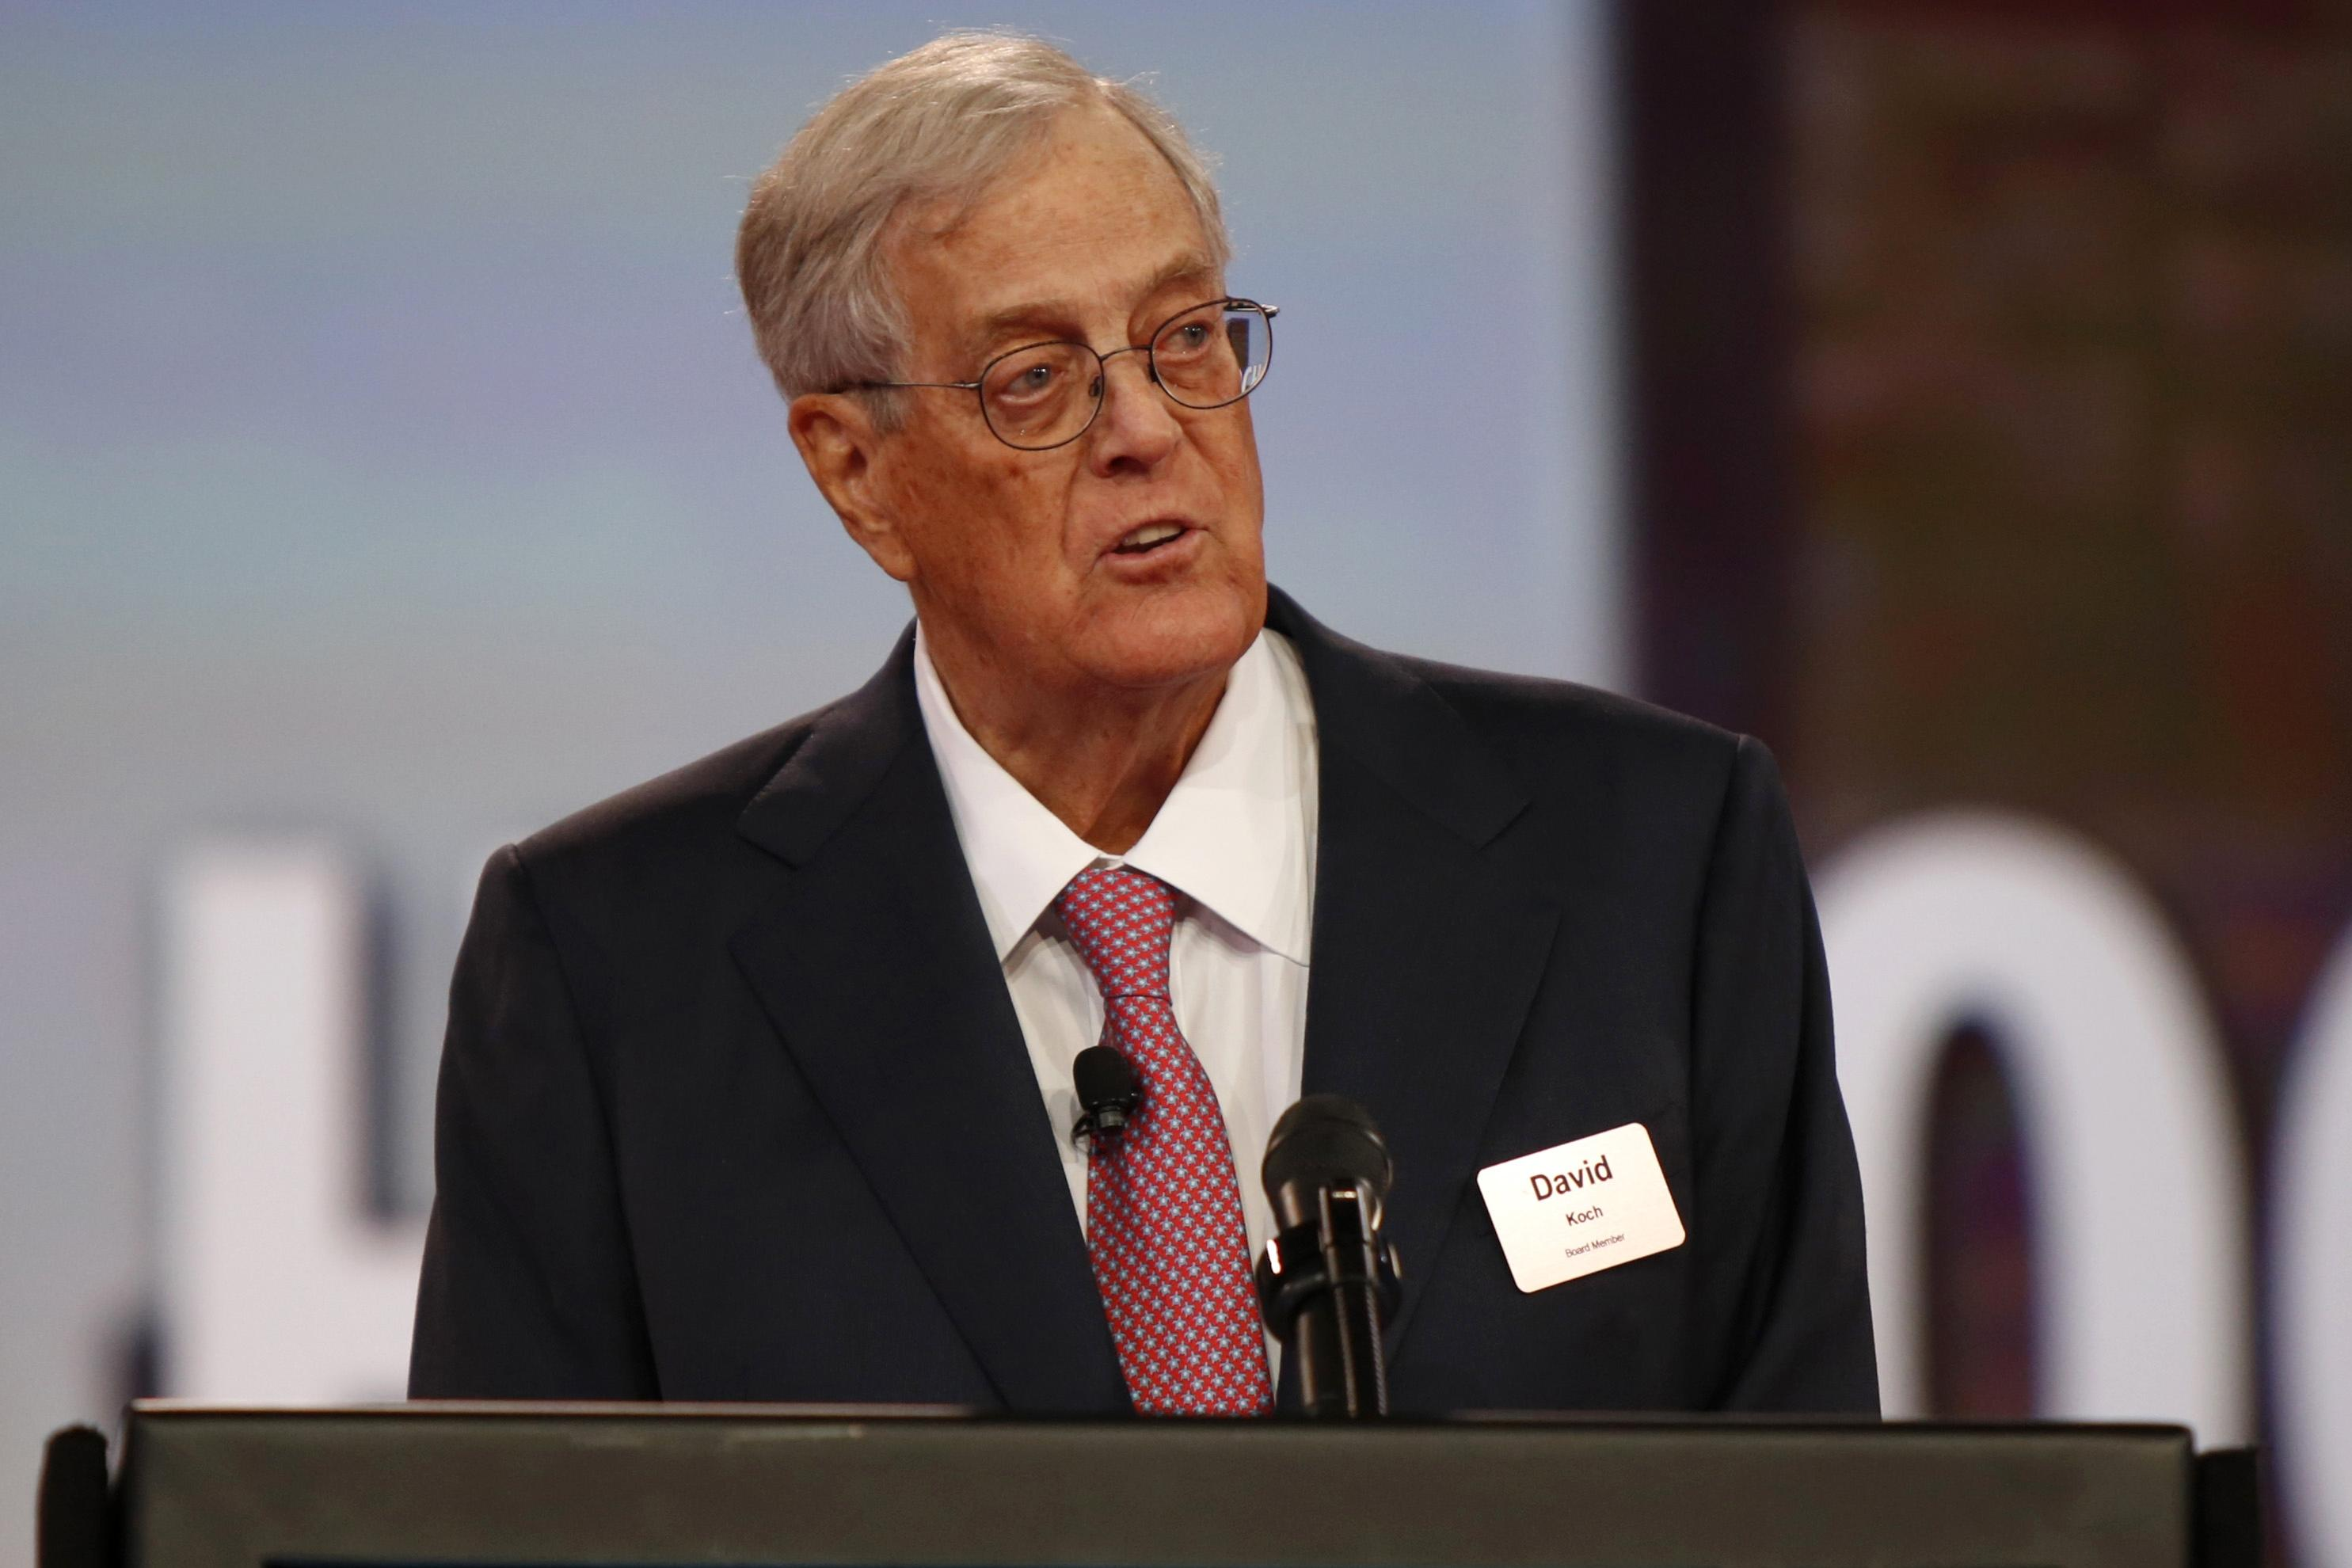 Charles David Koch We Know Who You Are >> David Koch Billionaire Industrialist Who Influenced Conservative